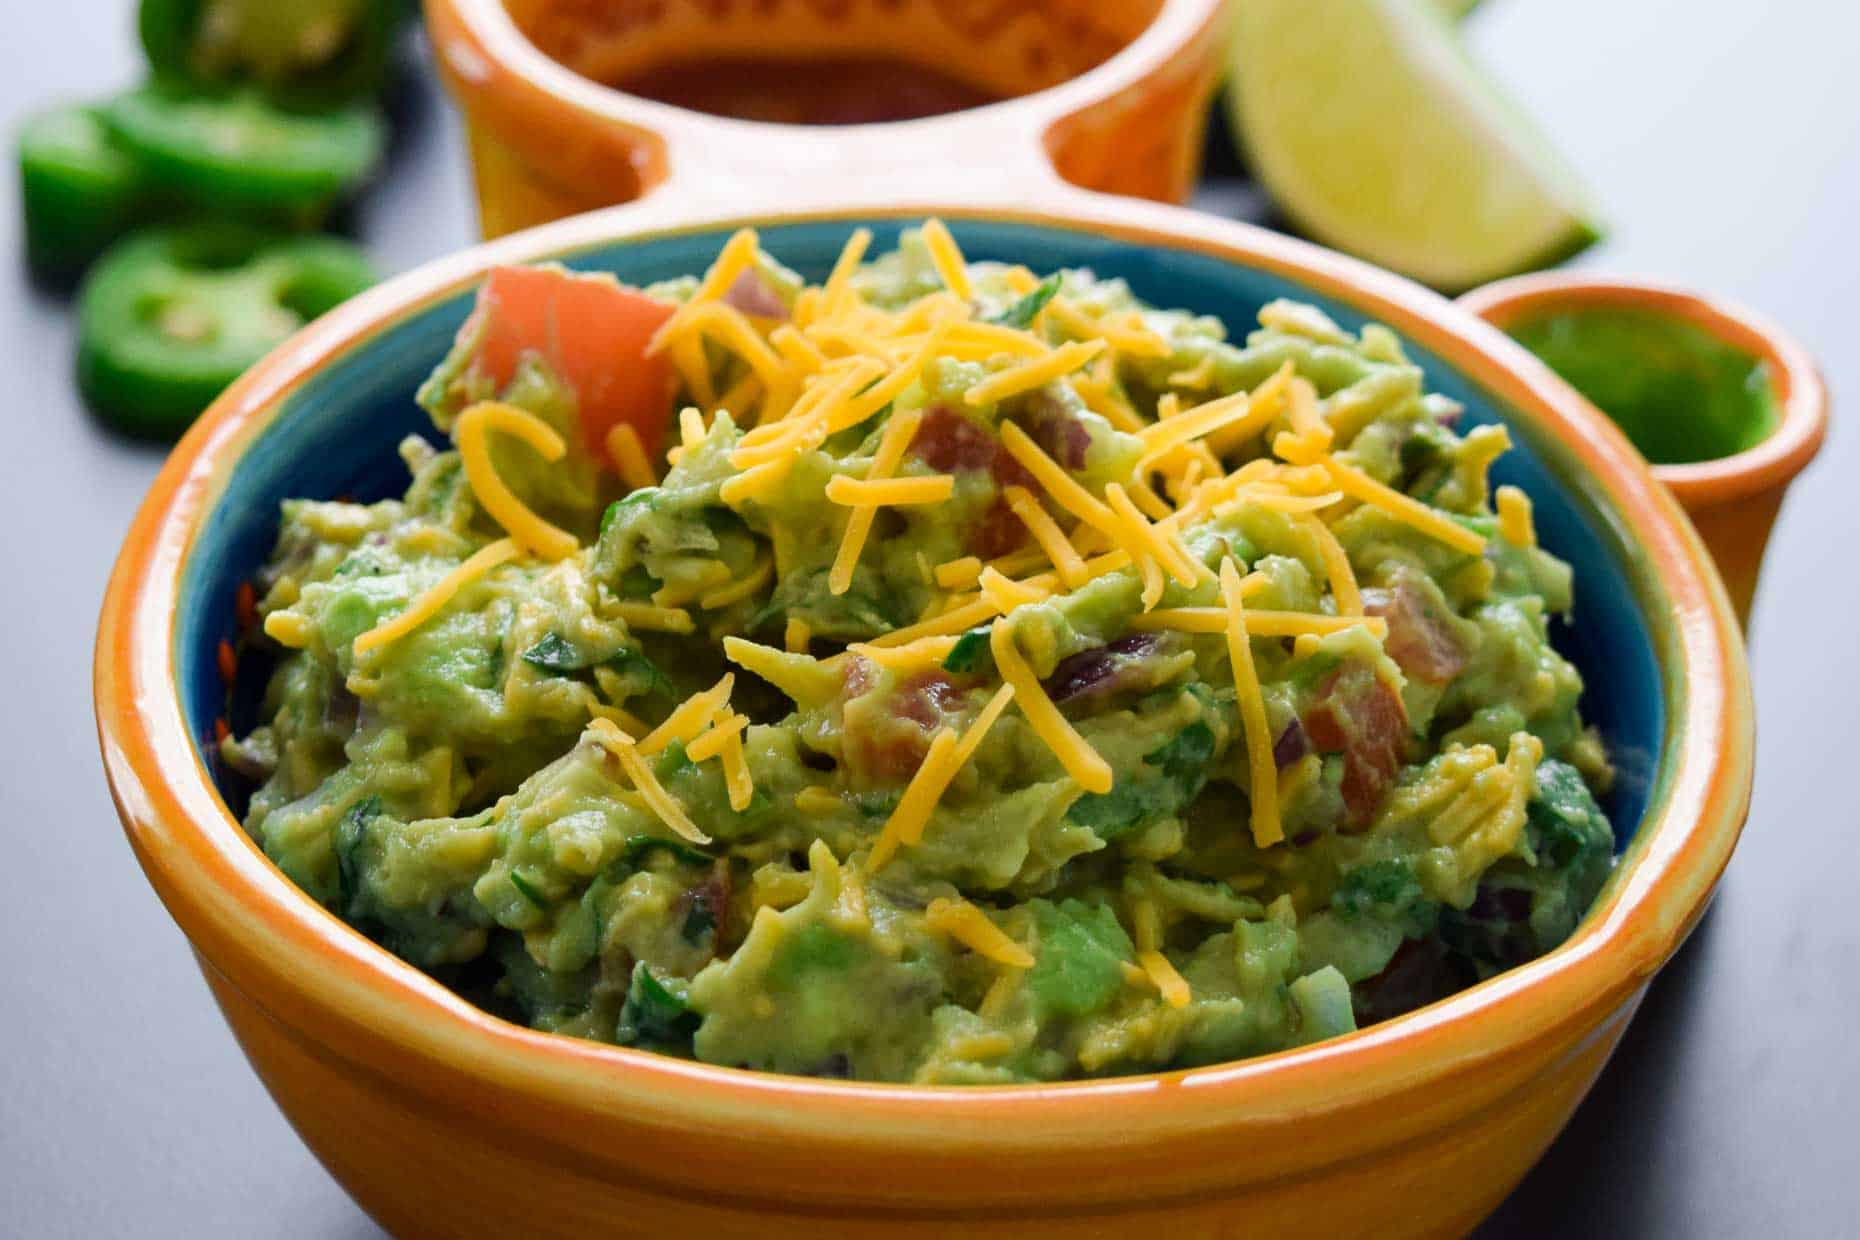 Cheesy Guacamole served in Mexican dish side view